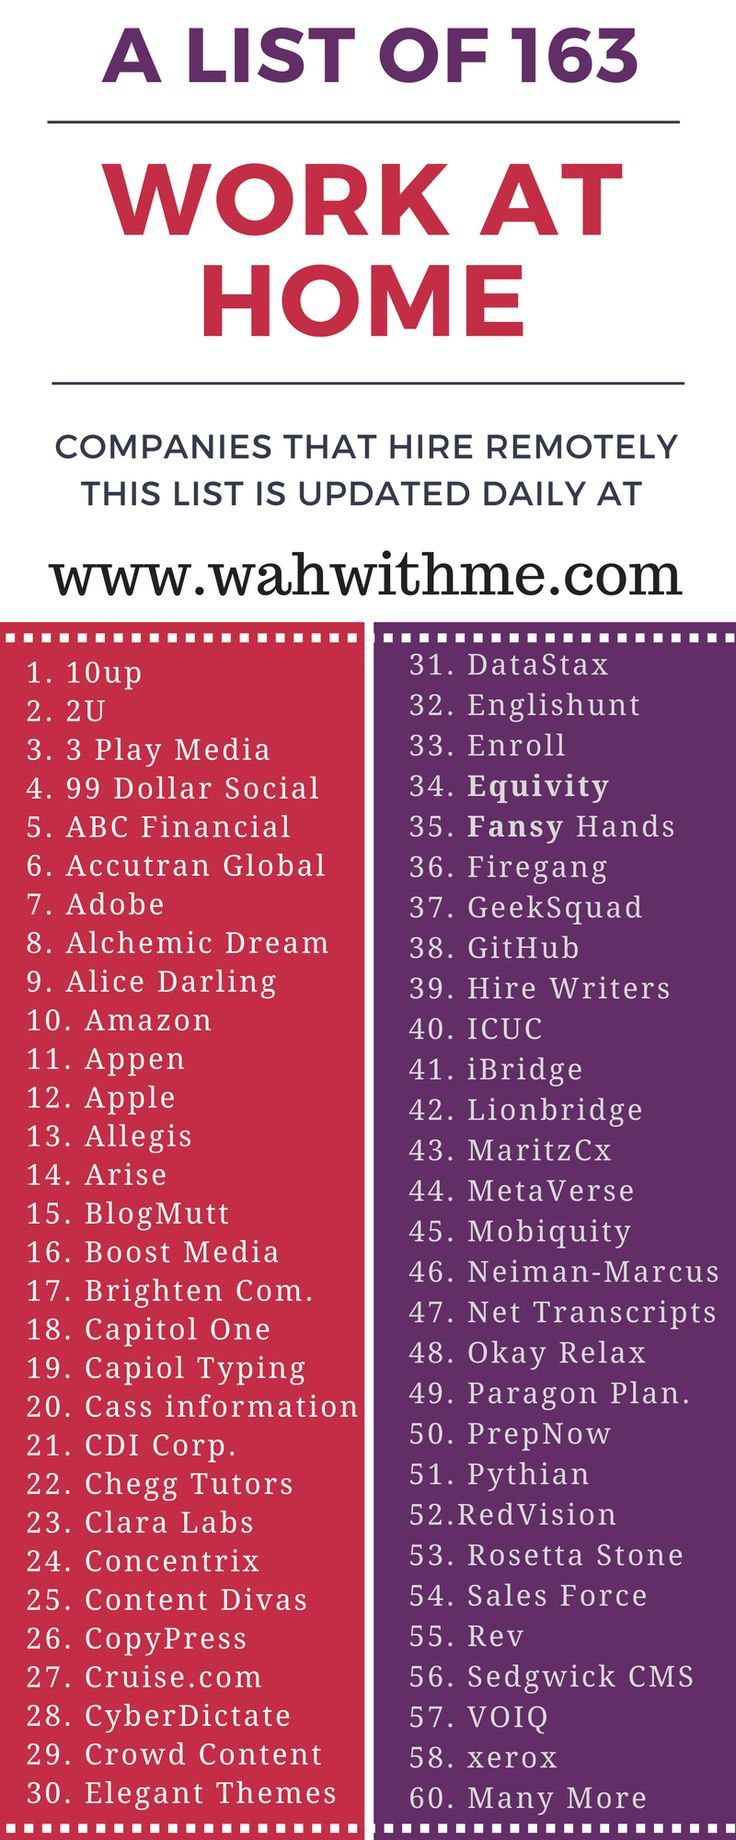 Work at Home Jobs Directory (Over 200 Companies) | EXTRA